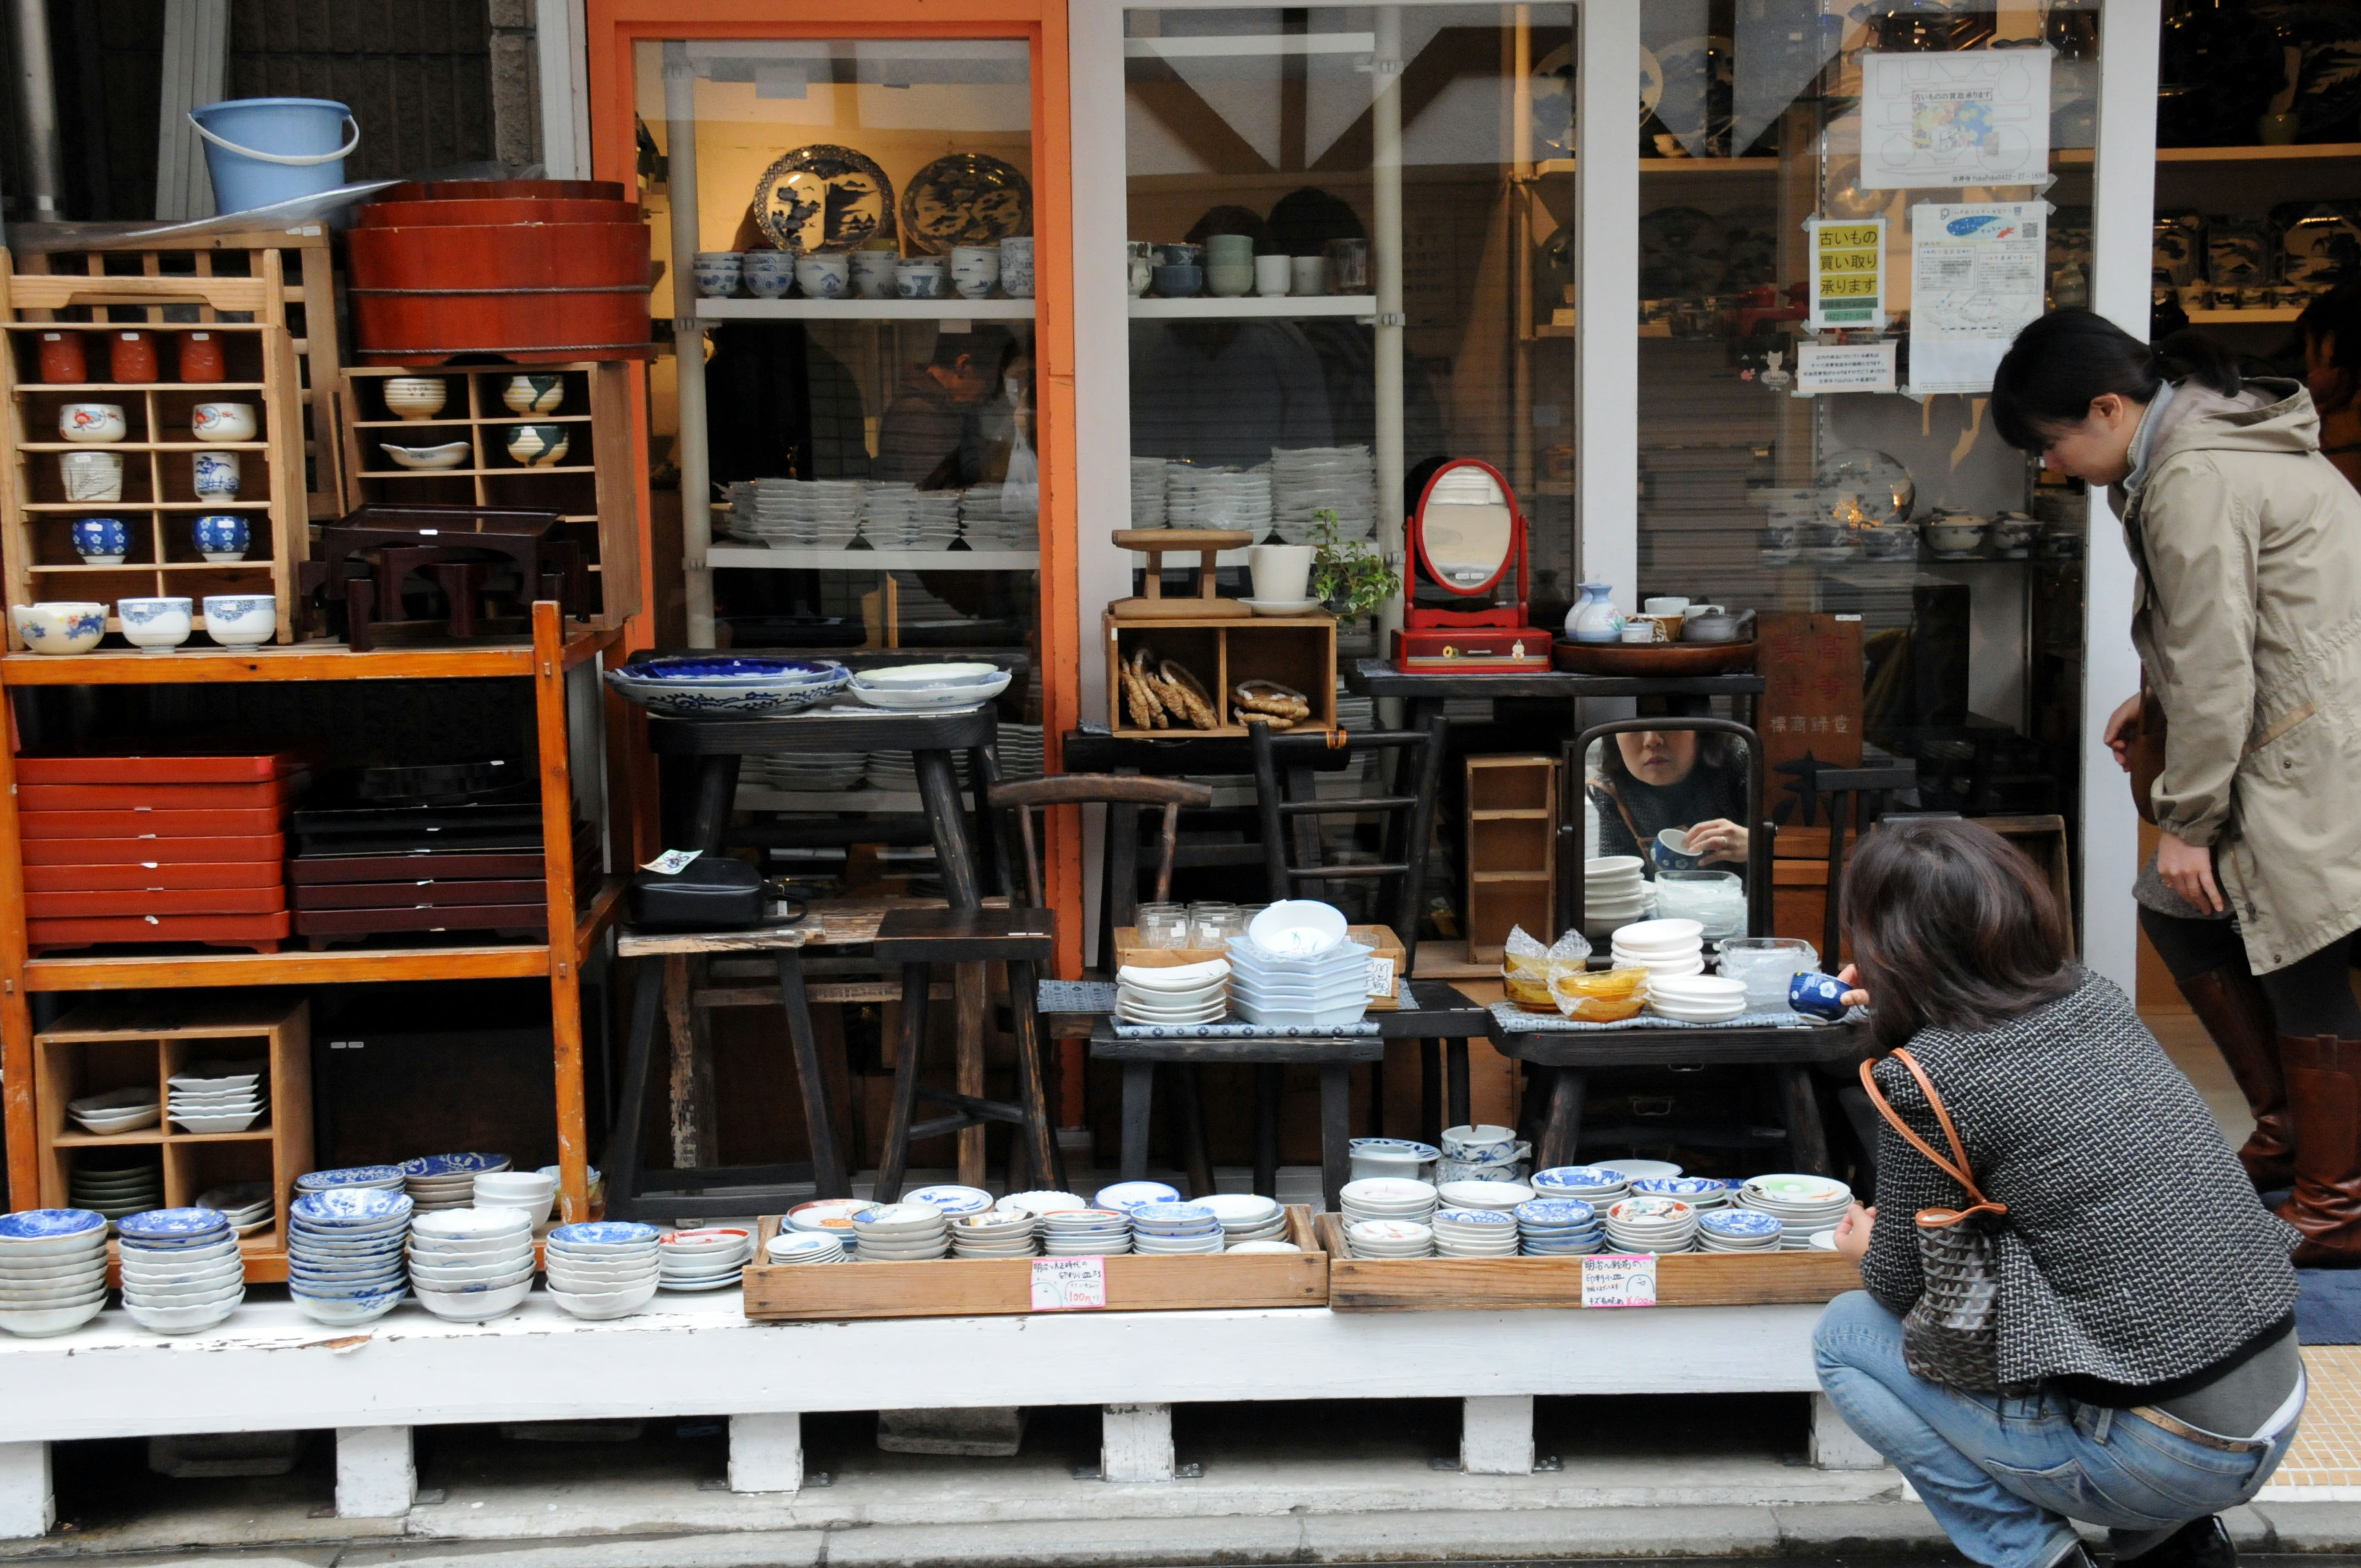 Shoppers browse cups and plates at one of several stores selling antiques in the Kichijoji area.